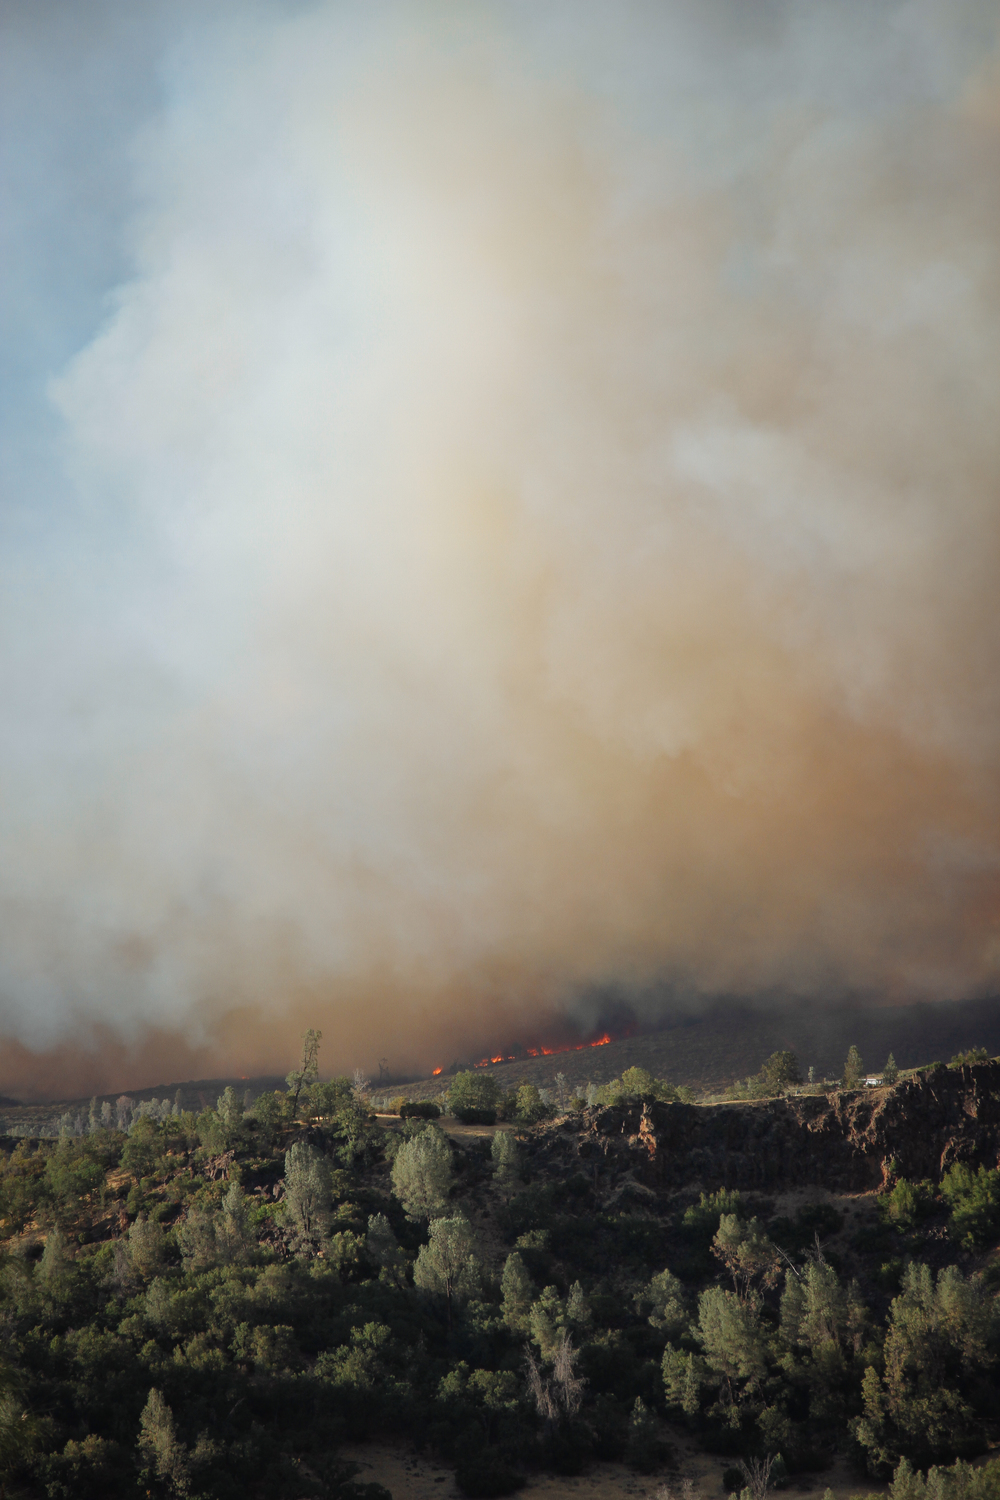 Jerusalem Fire approaching a home